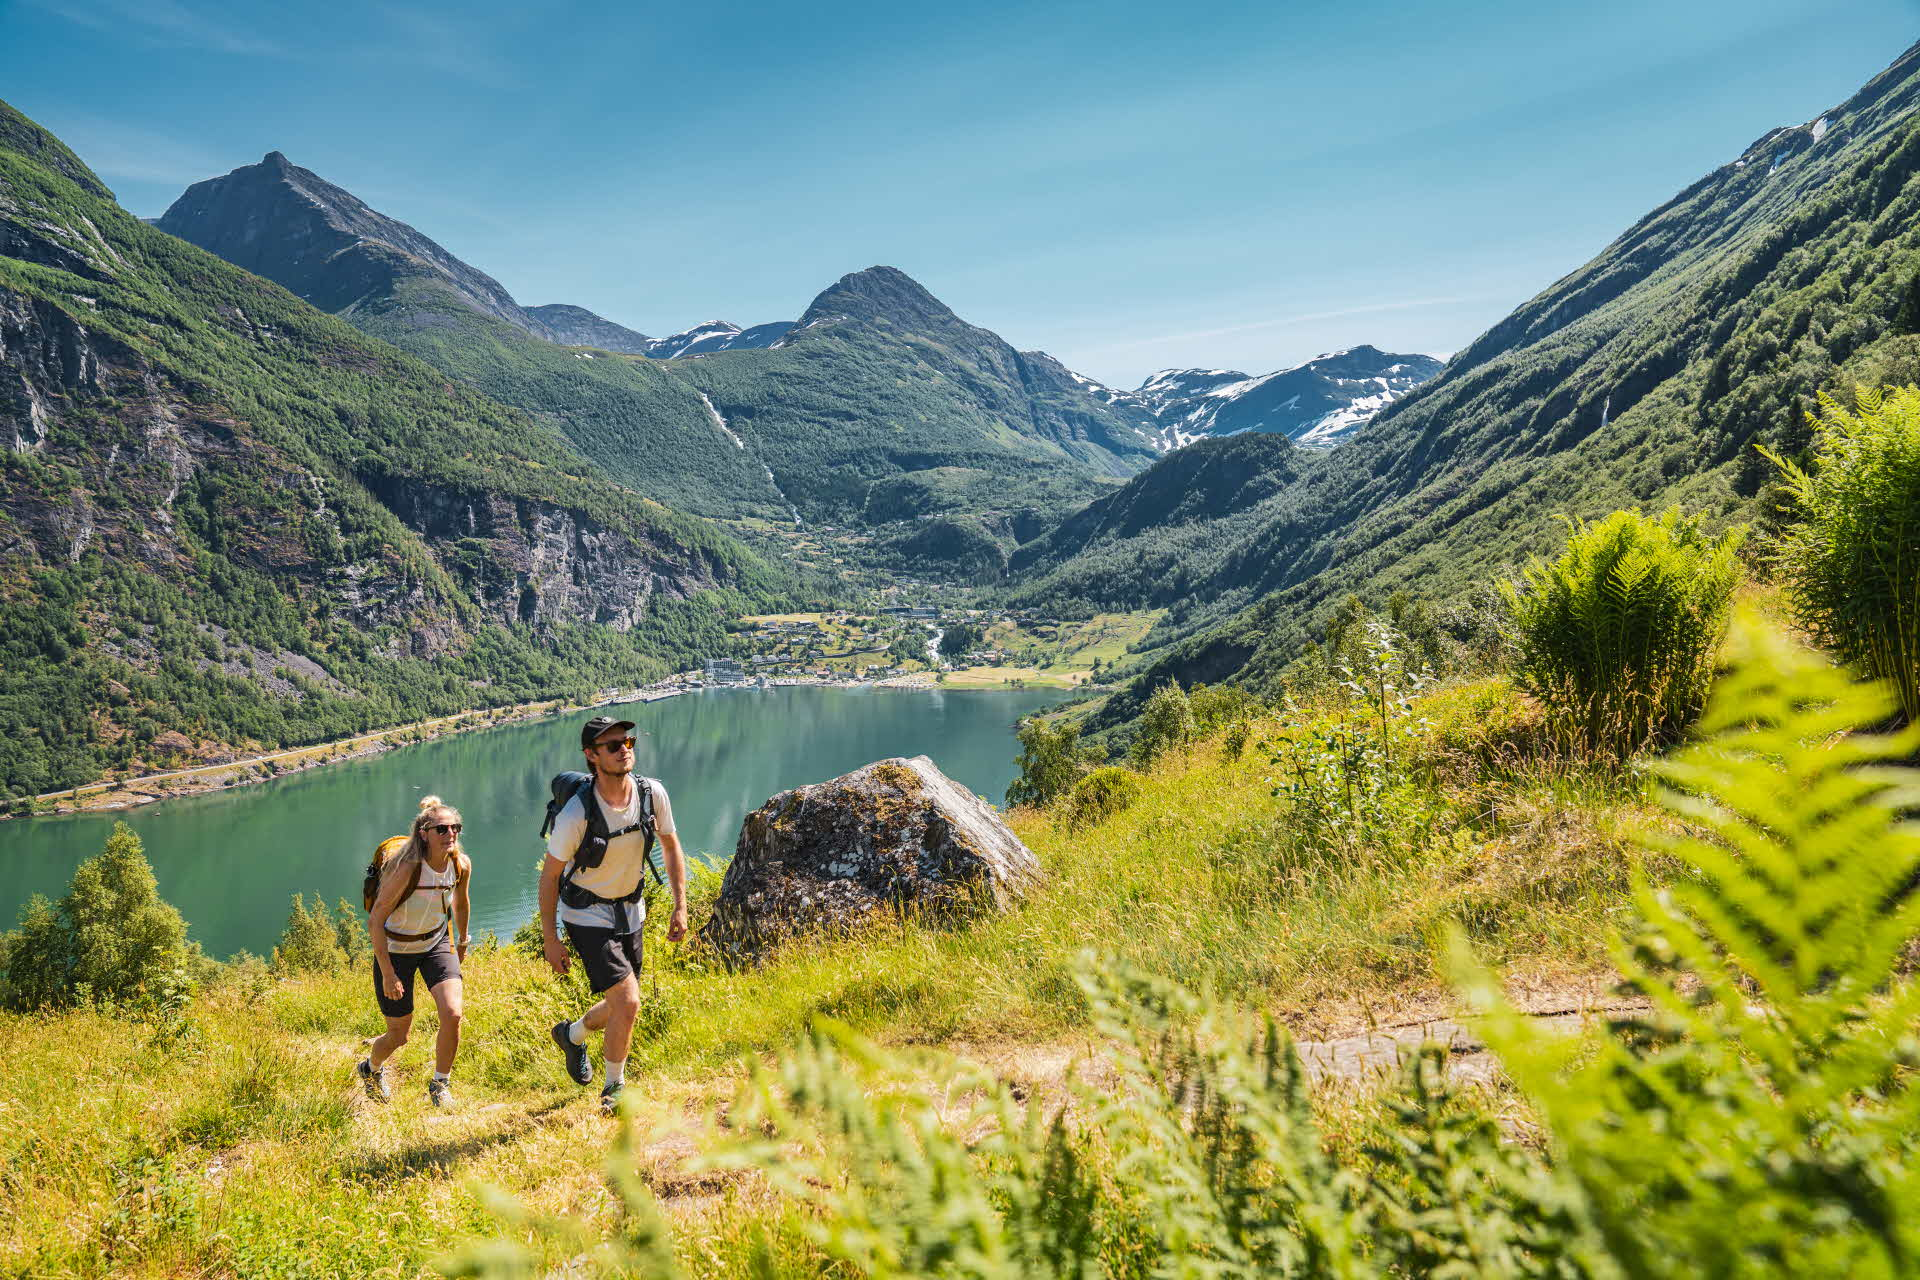 A man and woman hiking with Geiranger and Geirangerfjord in the background